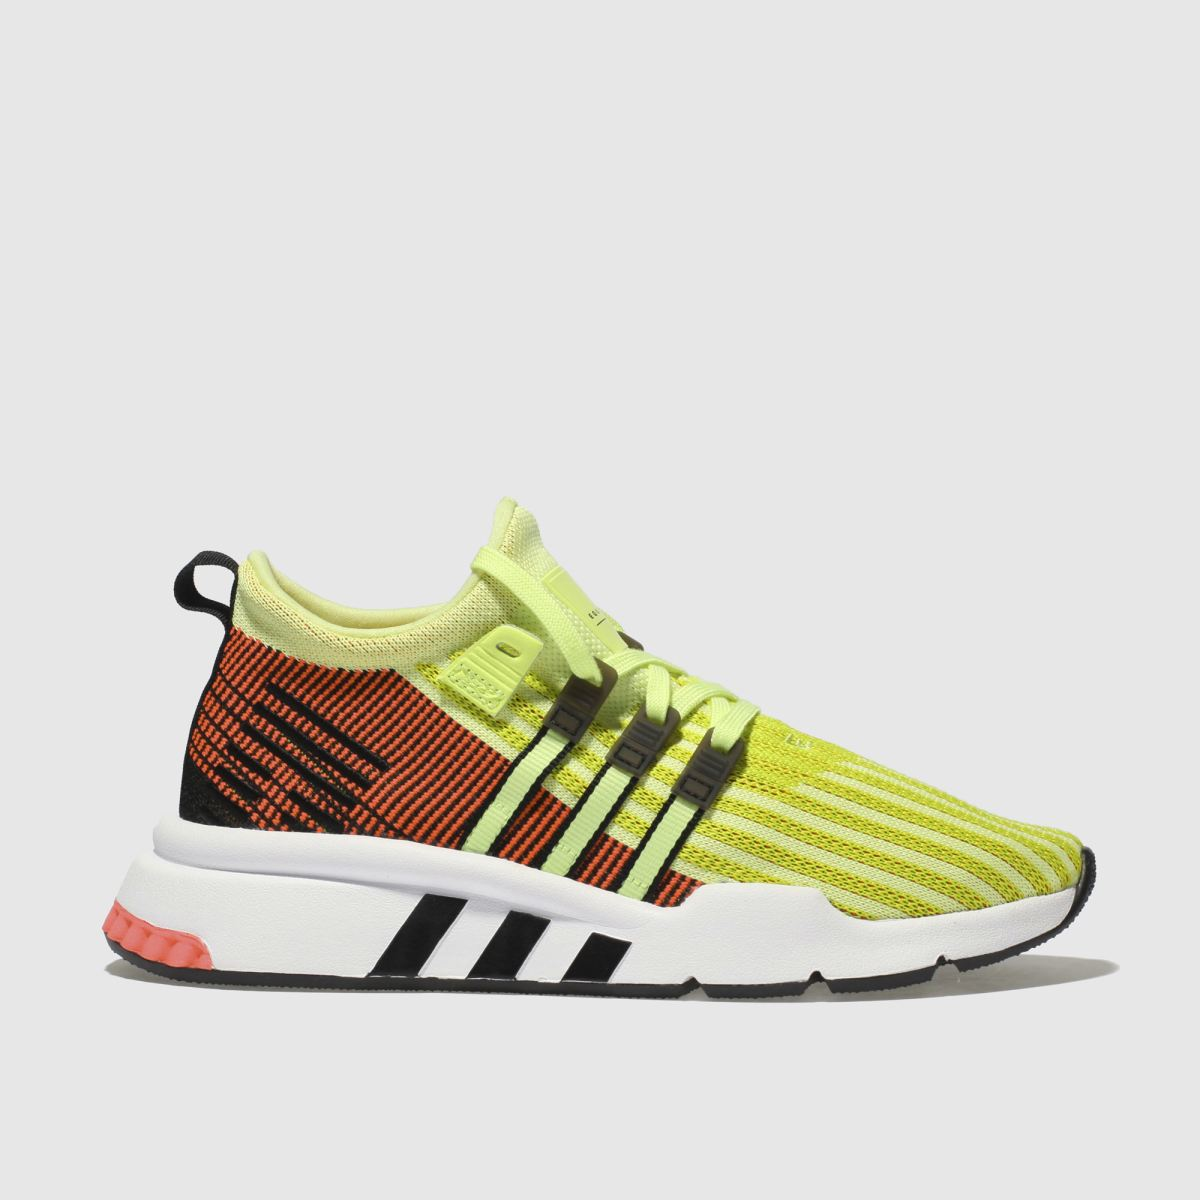 Adidas Adidas Yellow Eqt Support Adv Mid Youth Trainers